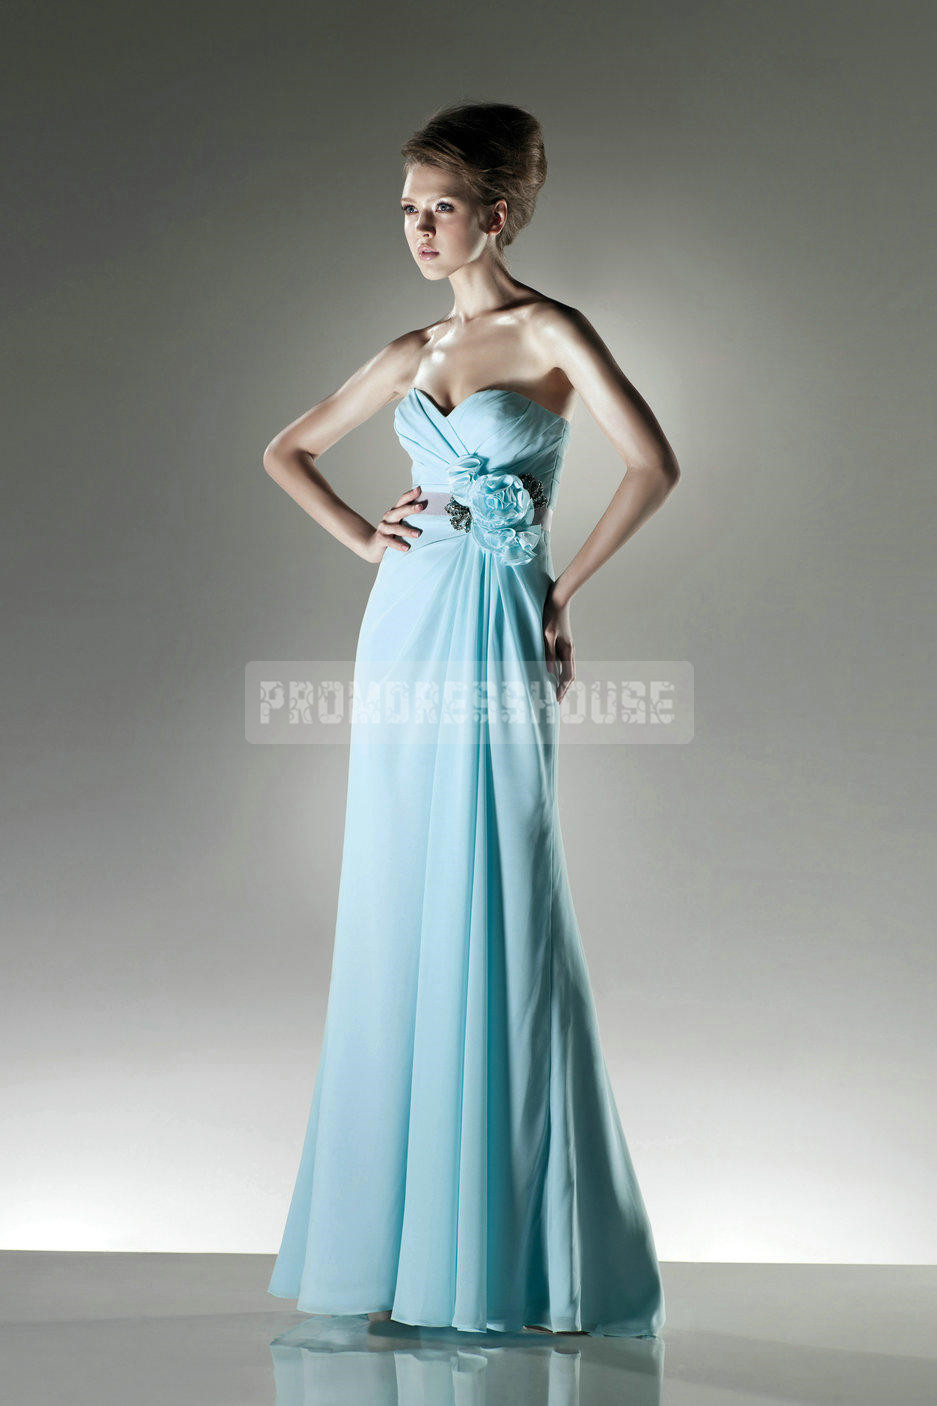 Chiffon Sweetheart A-line Flower Ribbons Dreamy Bridesmaid Dress - Promdresshouse.com